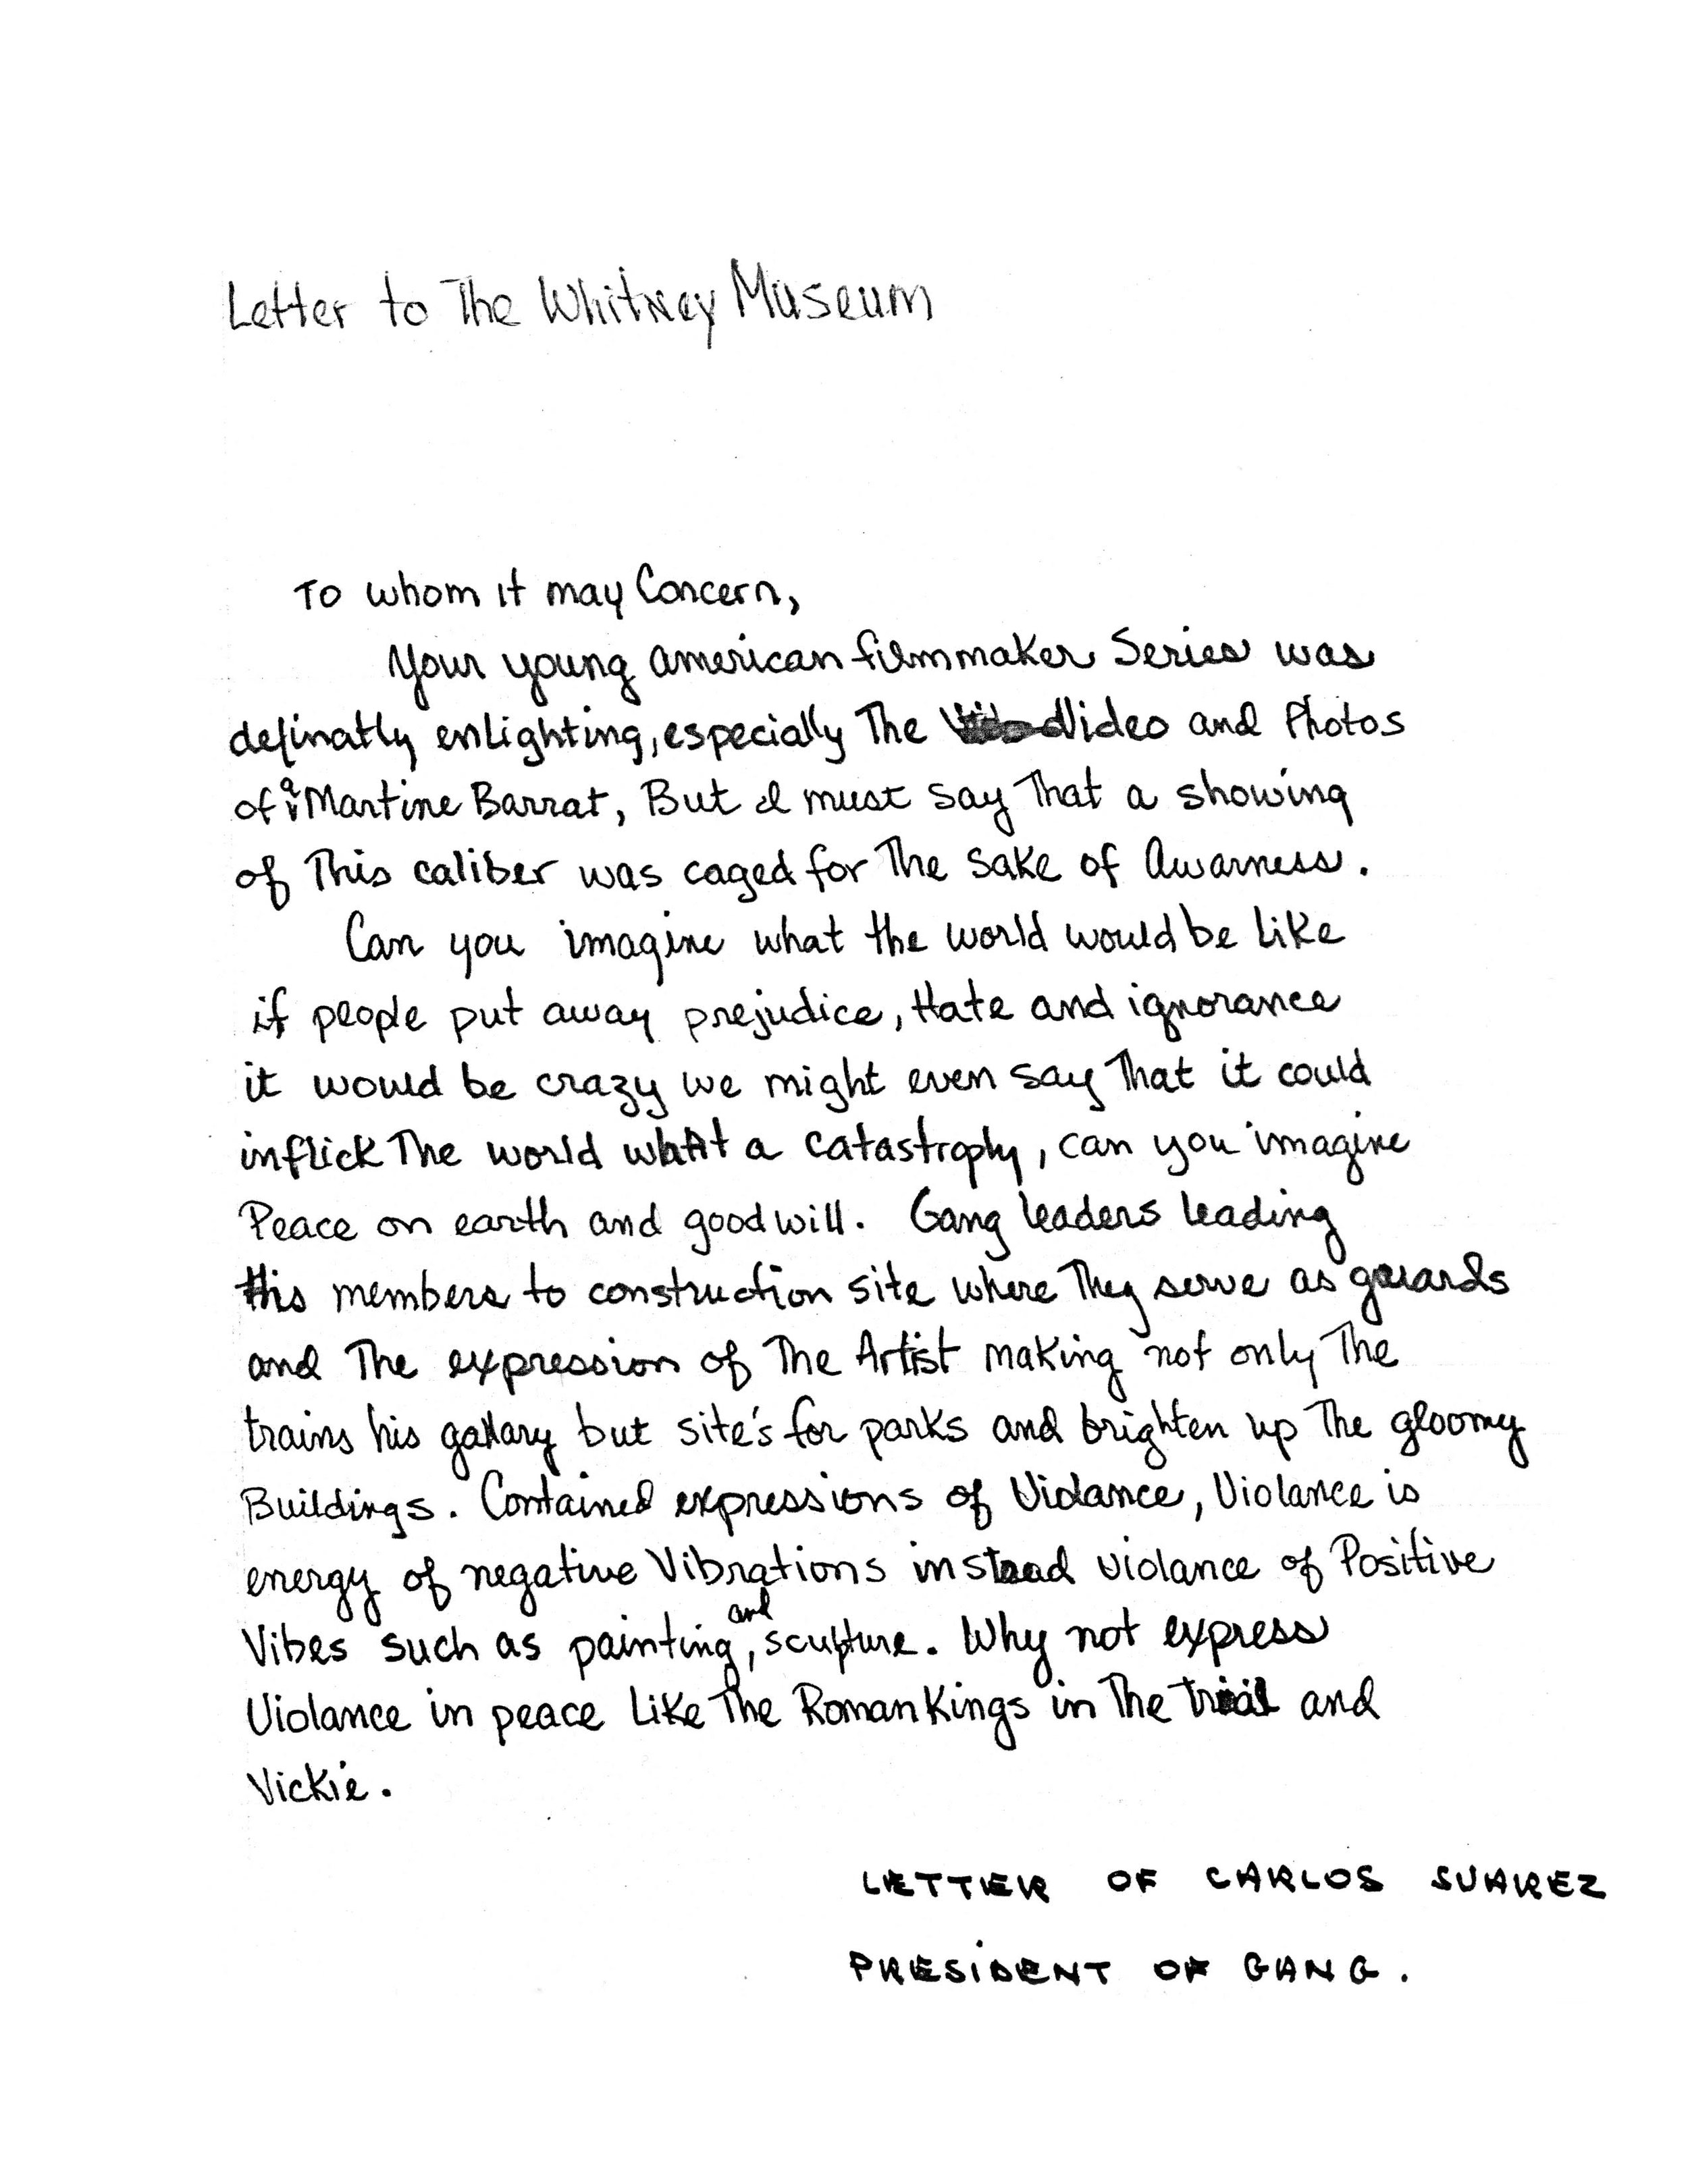 Letter written by Carlos Suarez, president of one of the gangs.